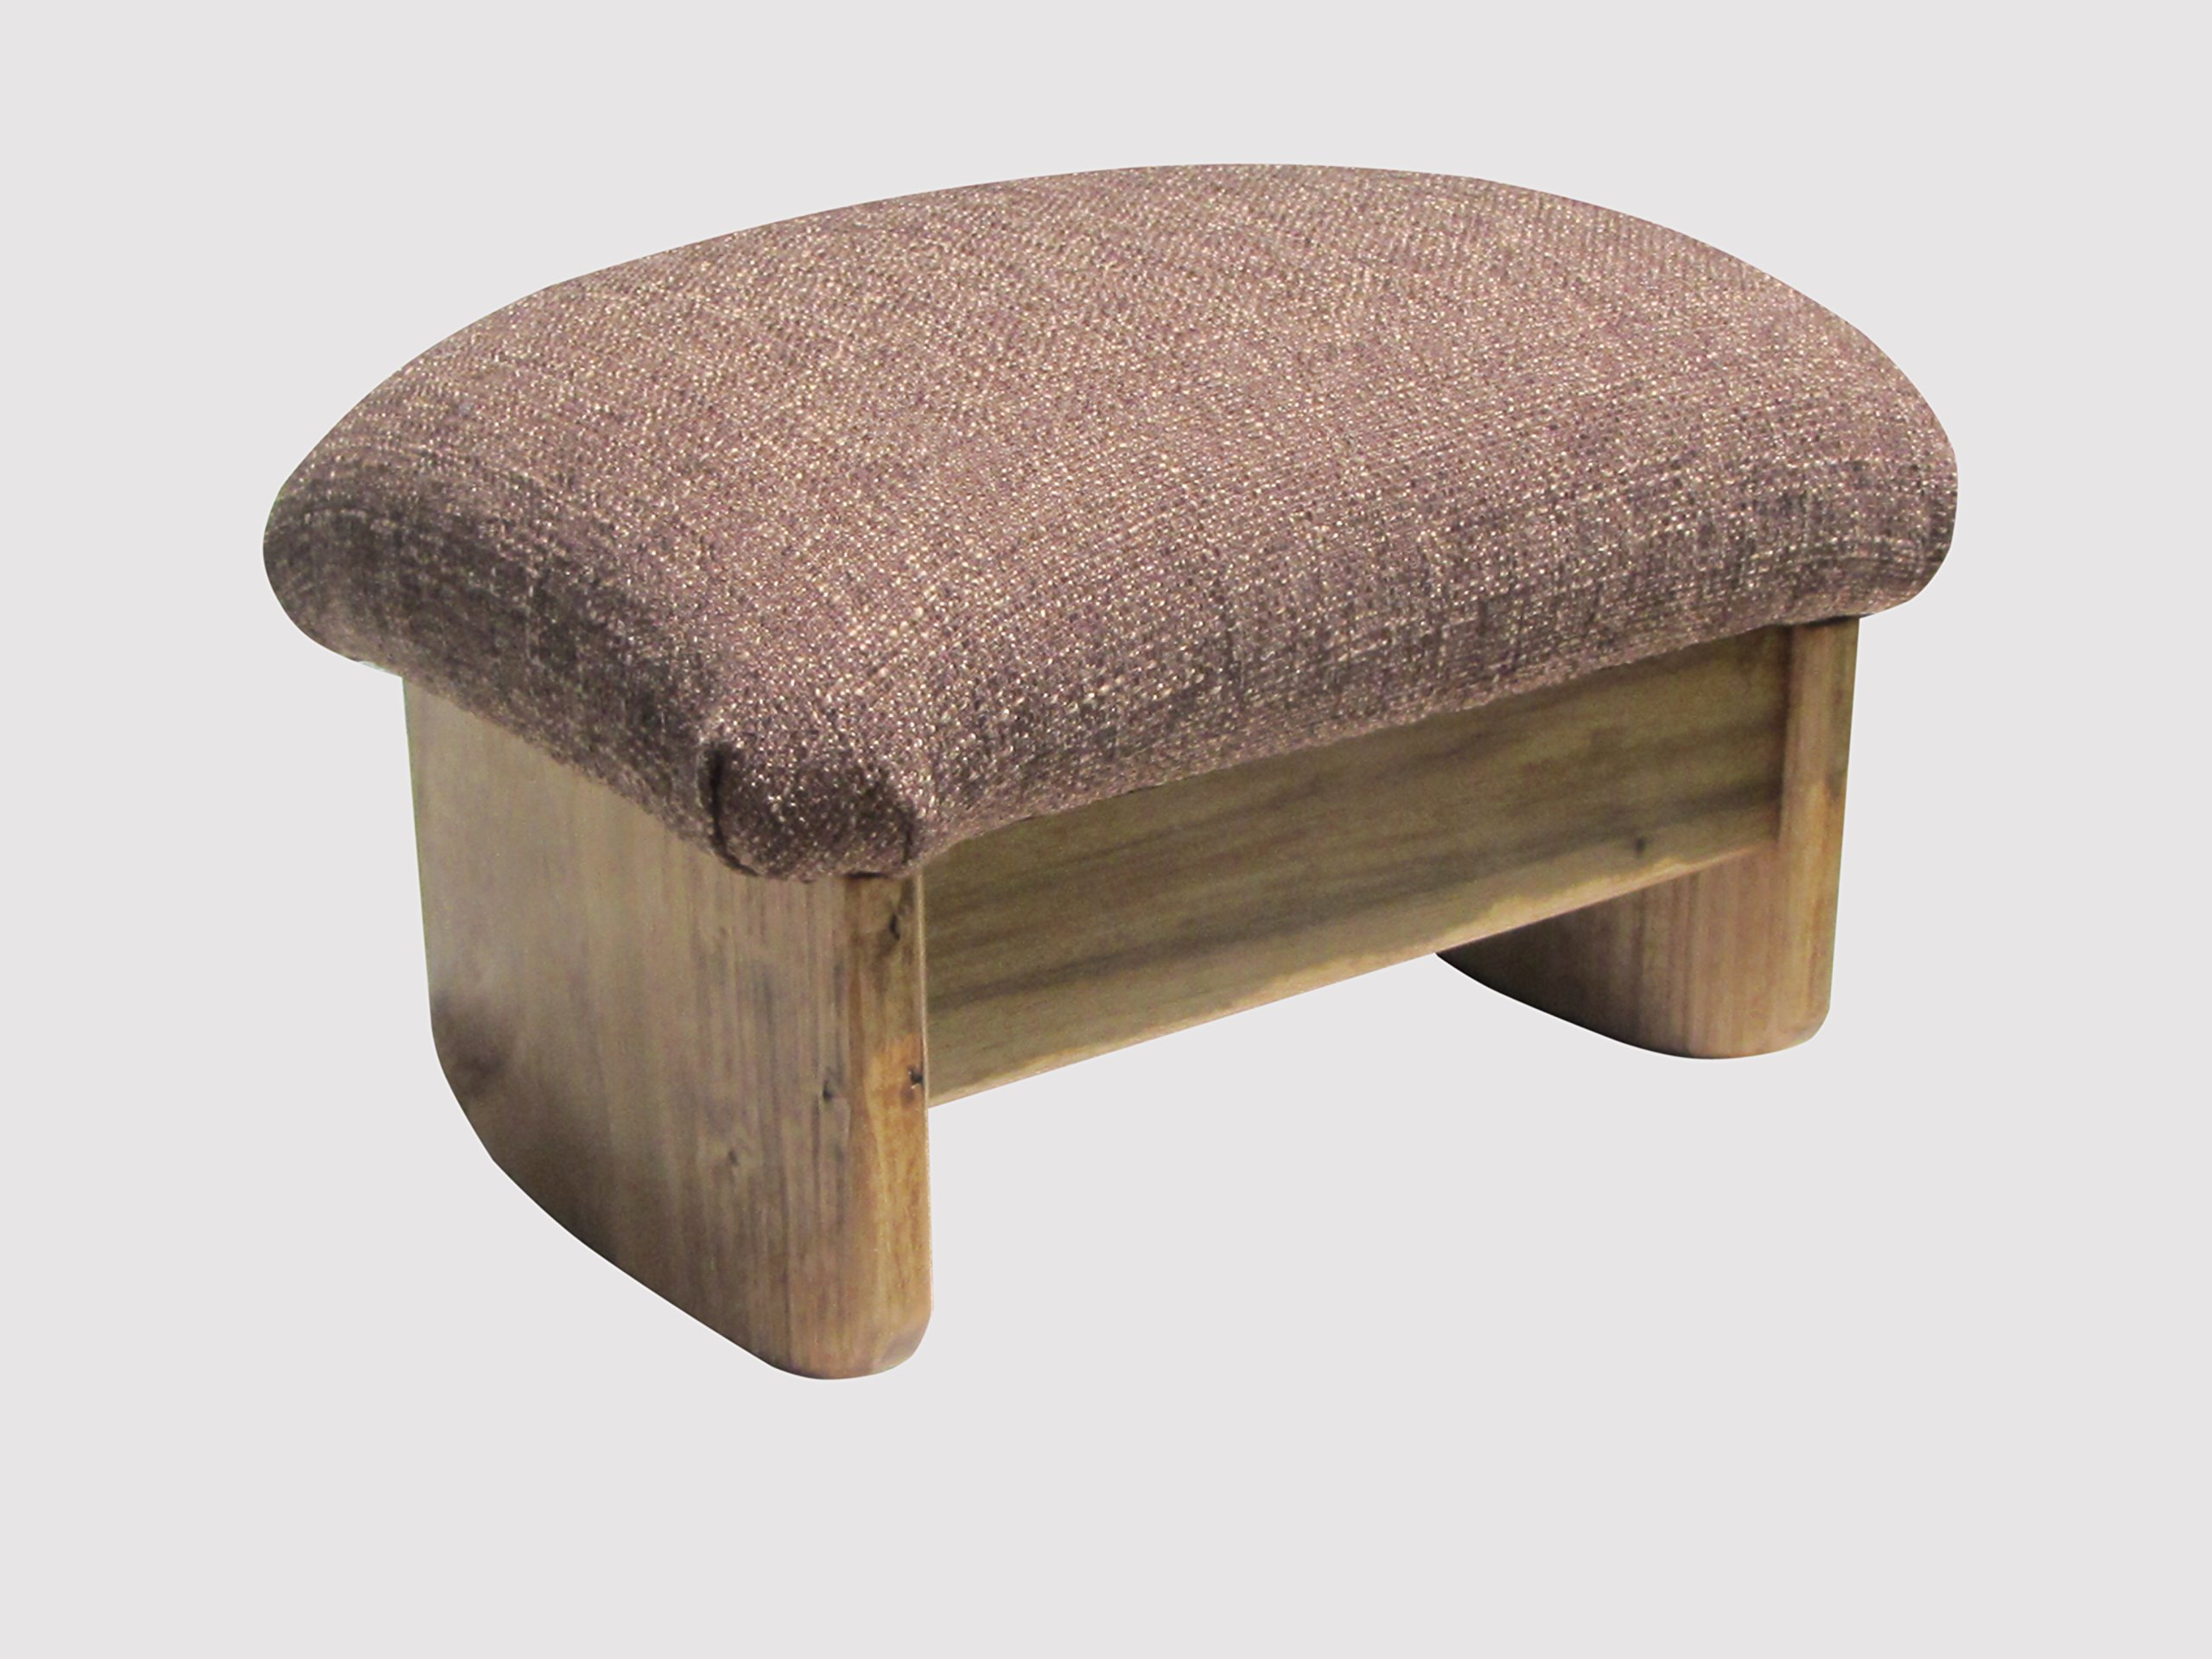 Rocking Padded Foot Stool, Cocoa Brown, 9'' Tall, Maple Stain (Made in the USA)